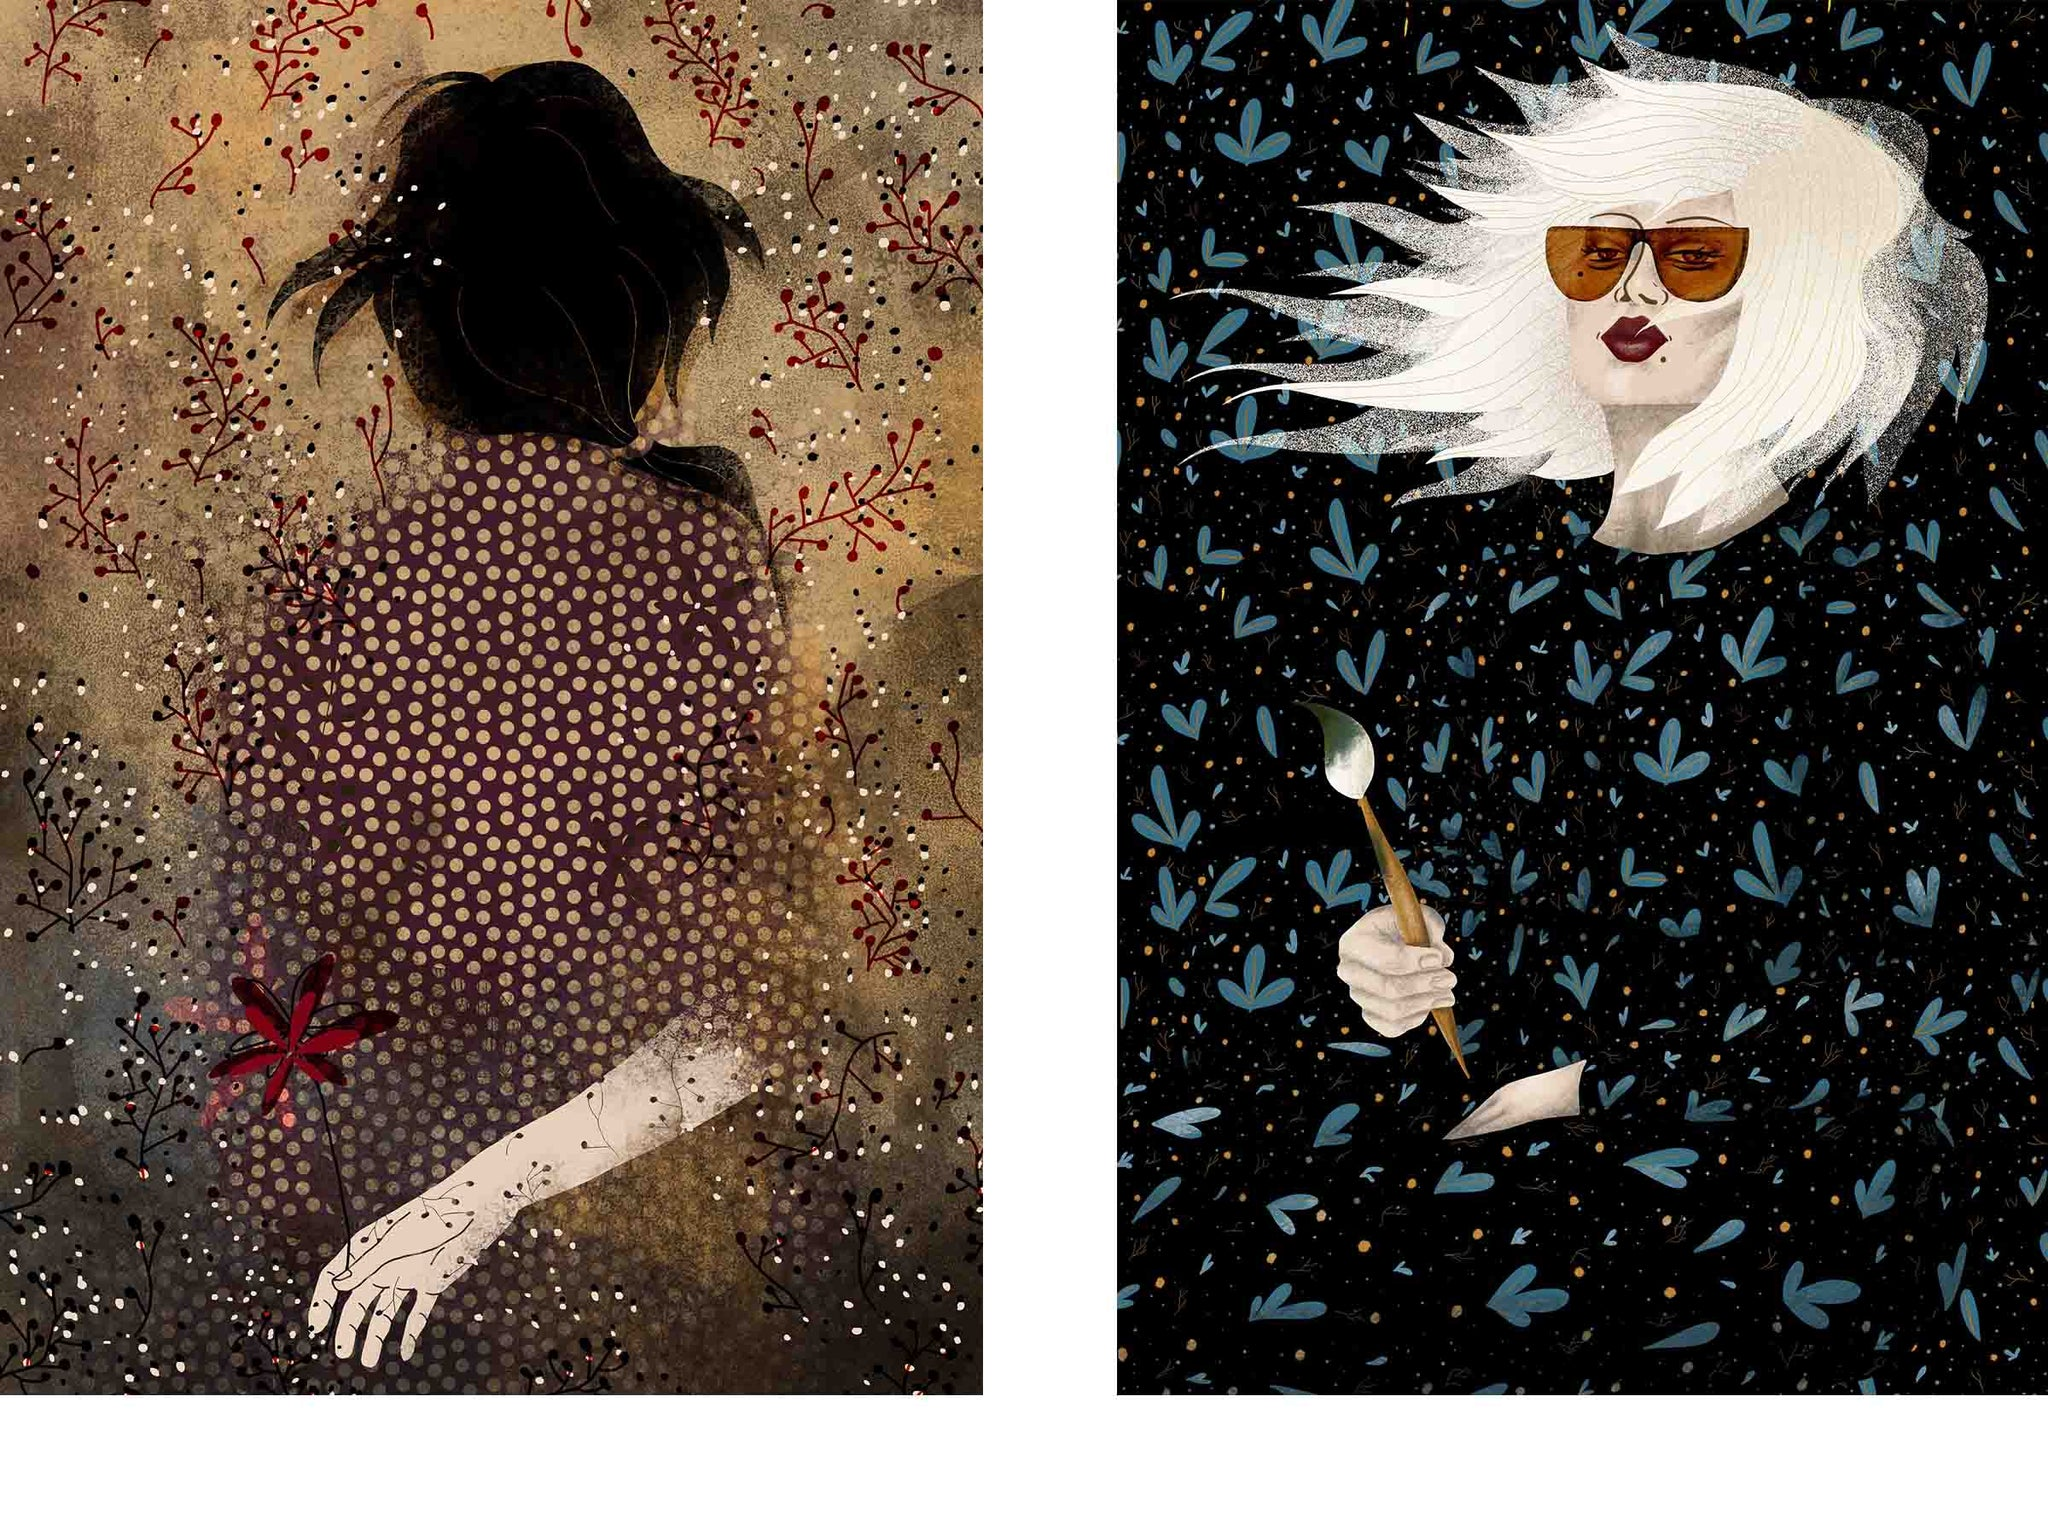 two separate stylized illustrated female portraits, both surrounded with flowers, the one on the left is showing her back and is holding a flower in her hand, the one on the right is wearing sunglasses and is holding a brush